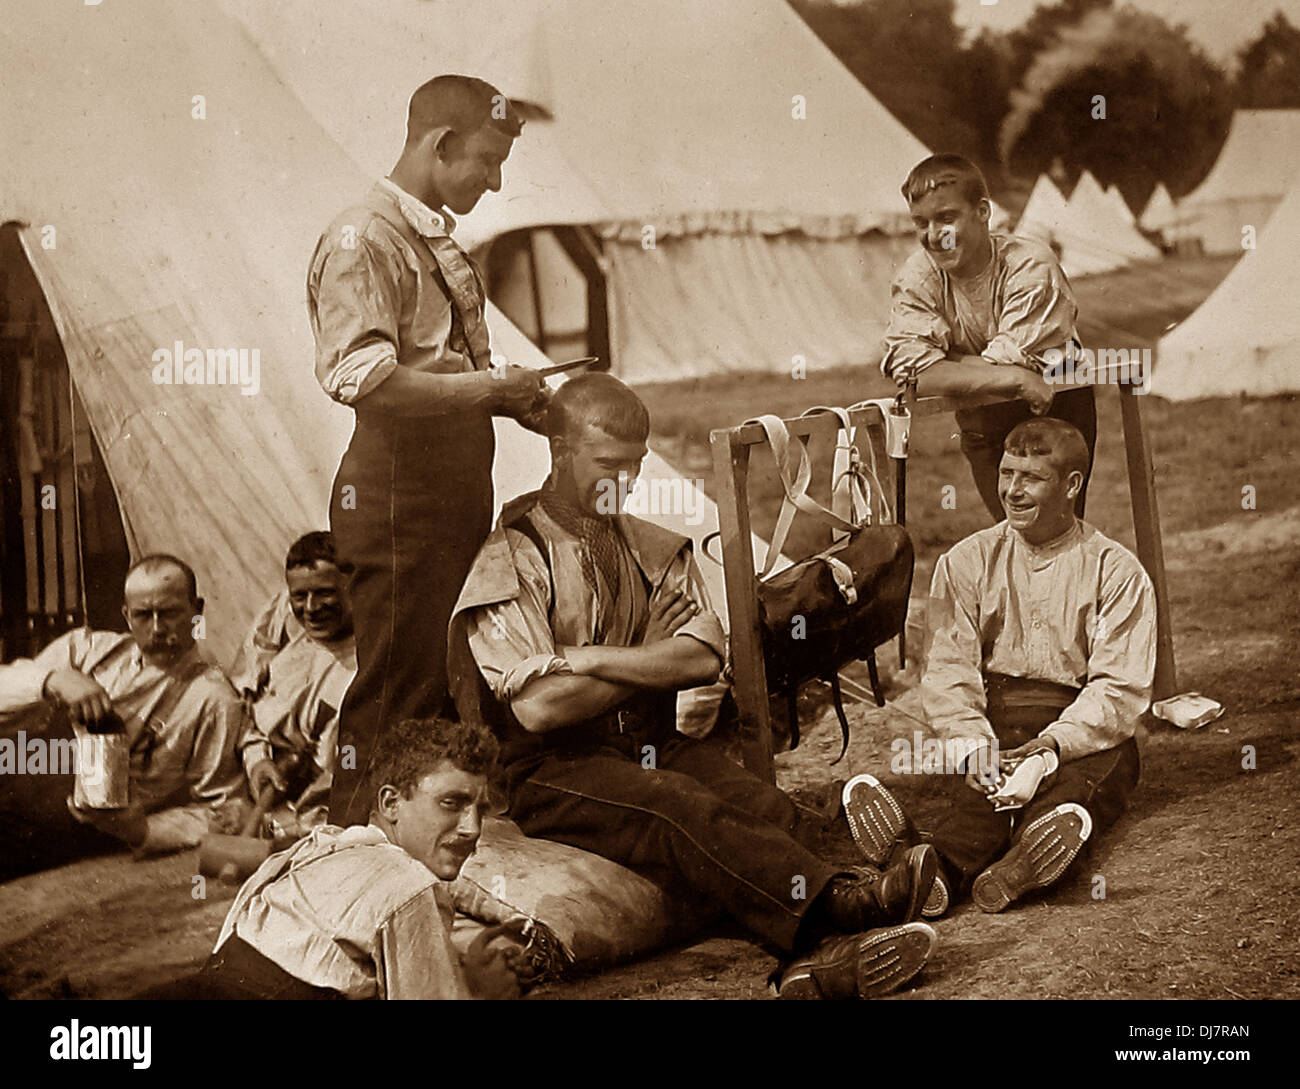 British Army Camp Victorian period - Stock Image